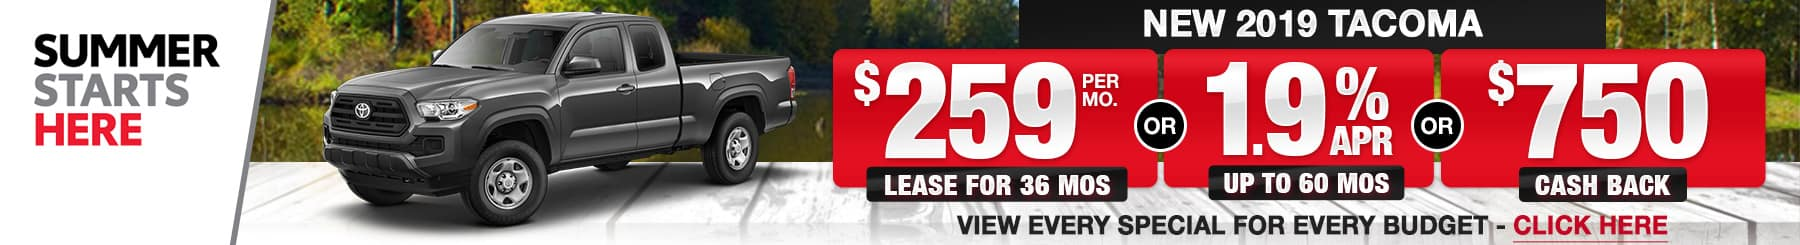 Toyota Tacoma Lease Finance Specials